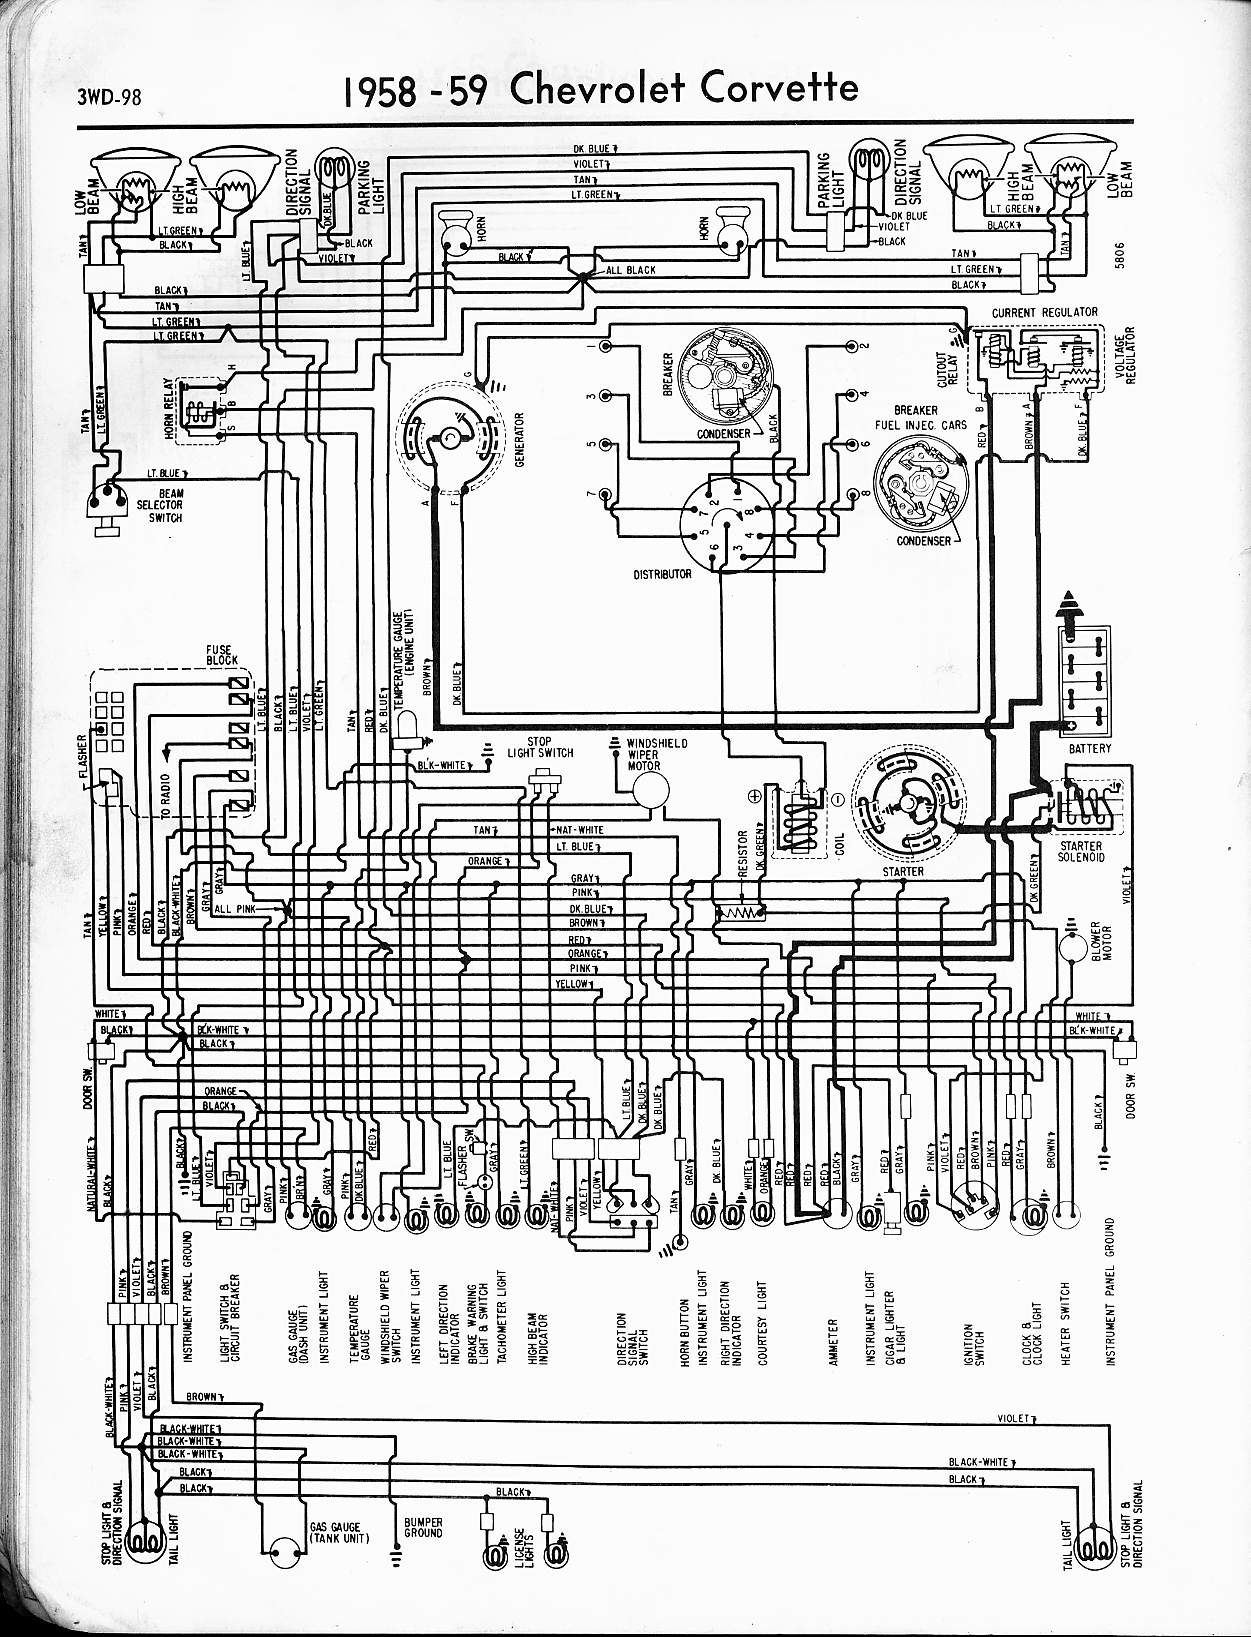 Wiring Diagram 1964 Chevy Corvette Manual E Books Jeep Tj Ignition 1958 Impala Electrical Schematic U202257 65 Diagrams Rh Oldcarmanualproject